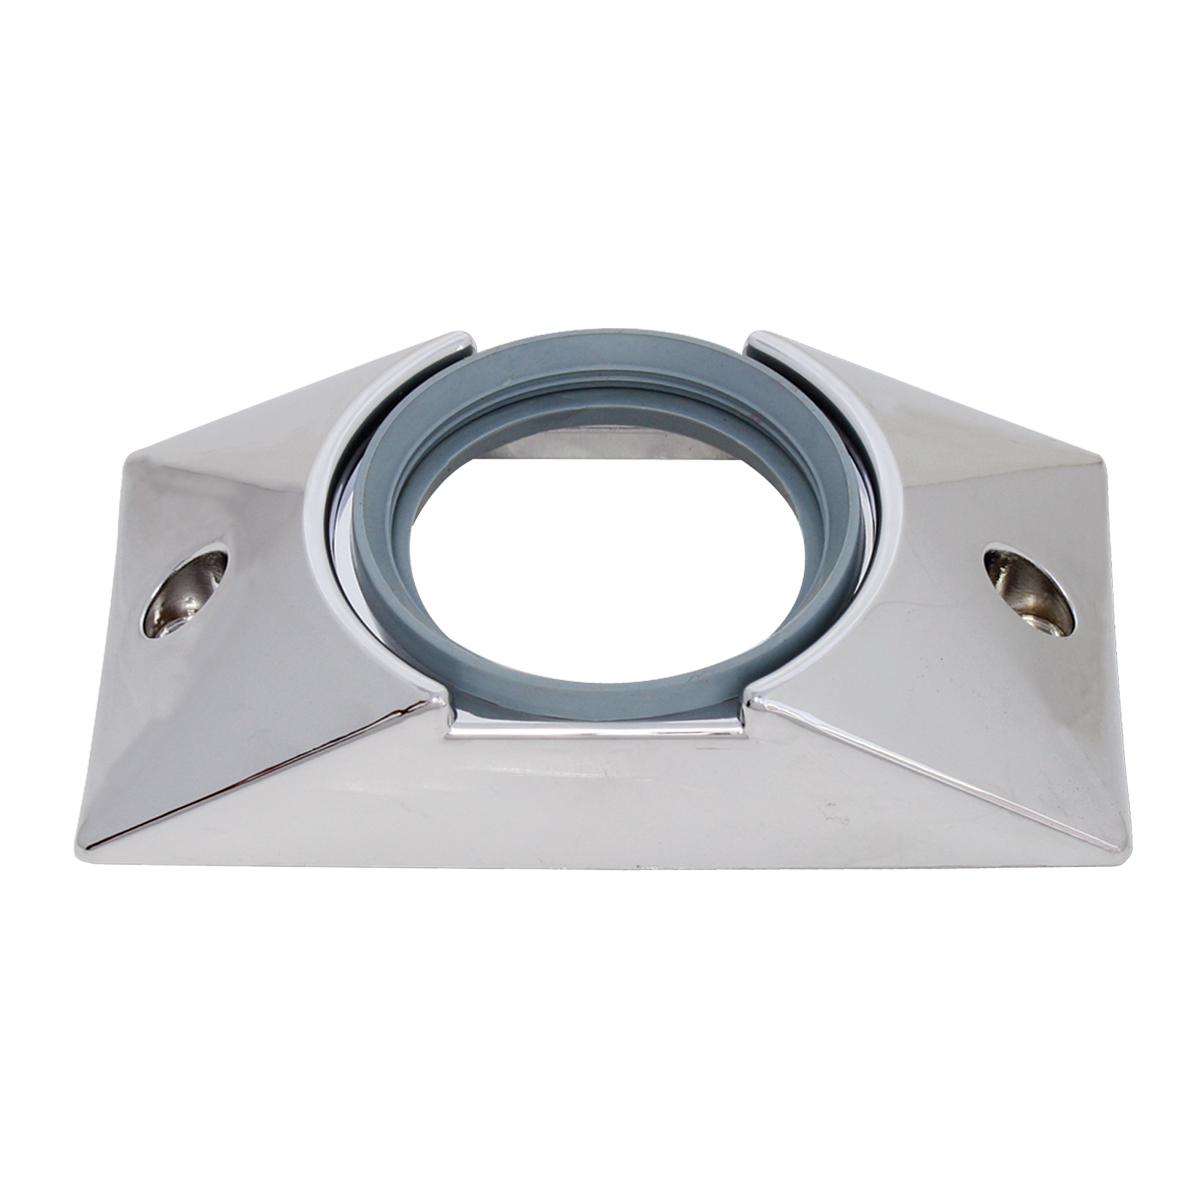 "82629 Chrome Plastic Mounting Bracket with Grommet for 2-1/2"" Round Light"